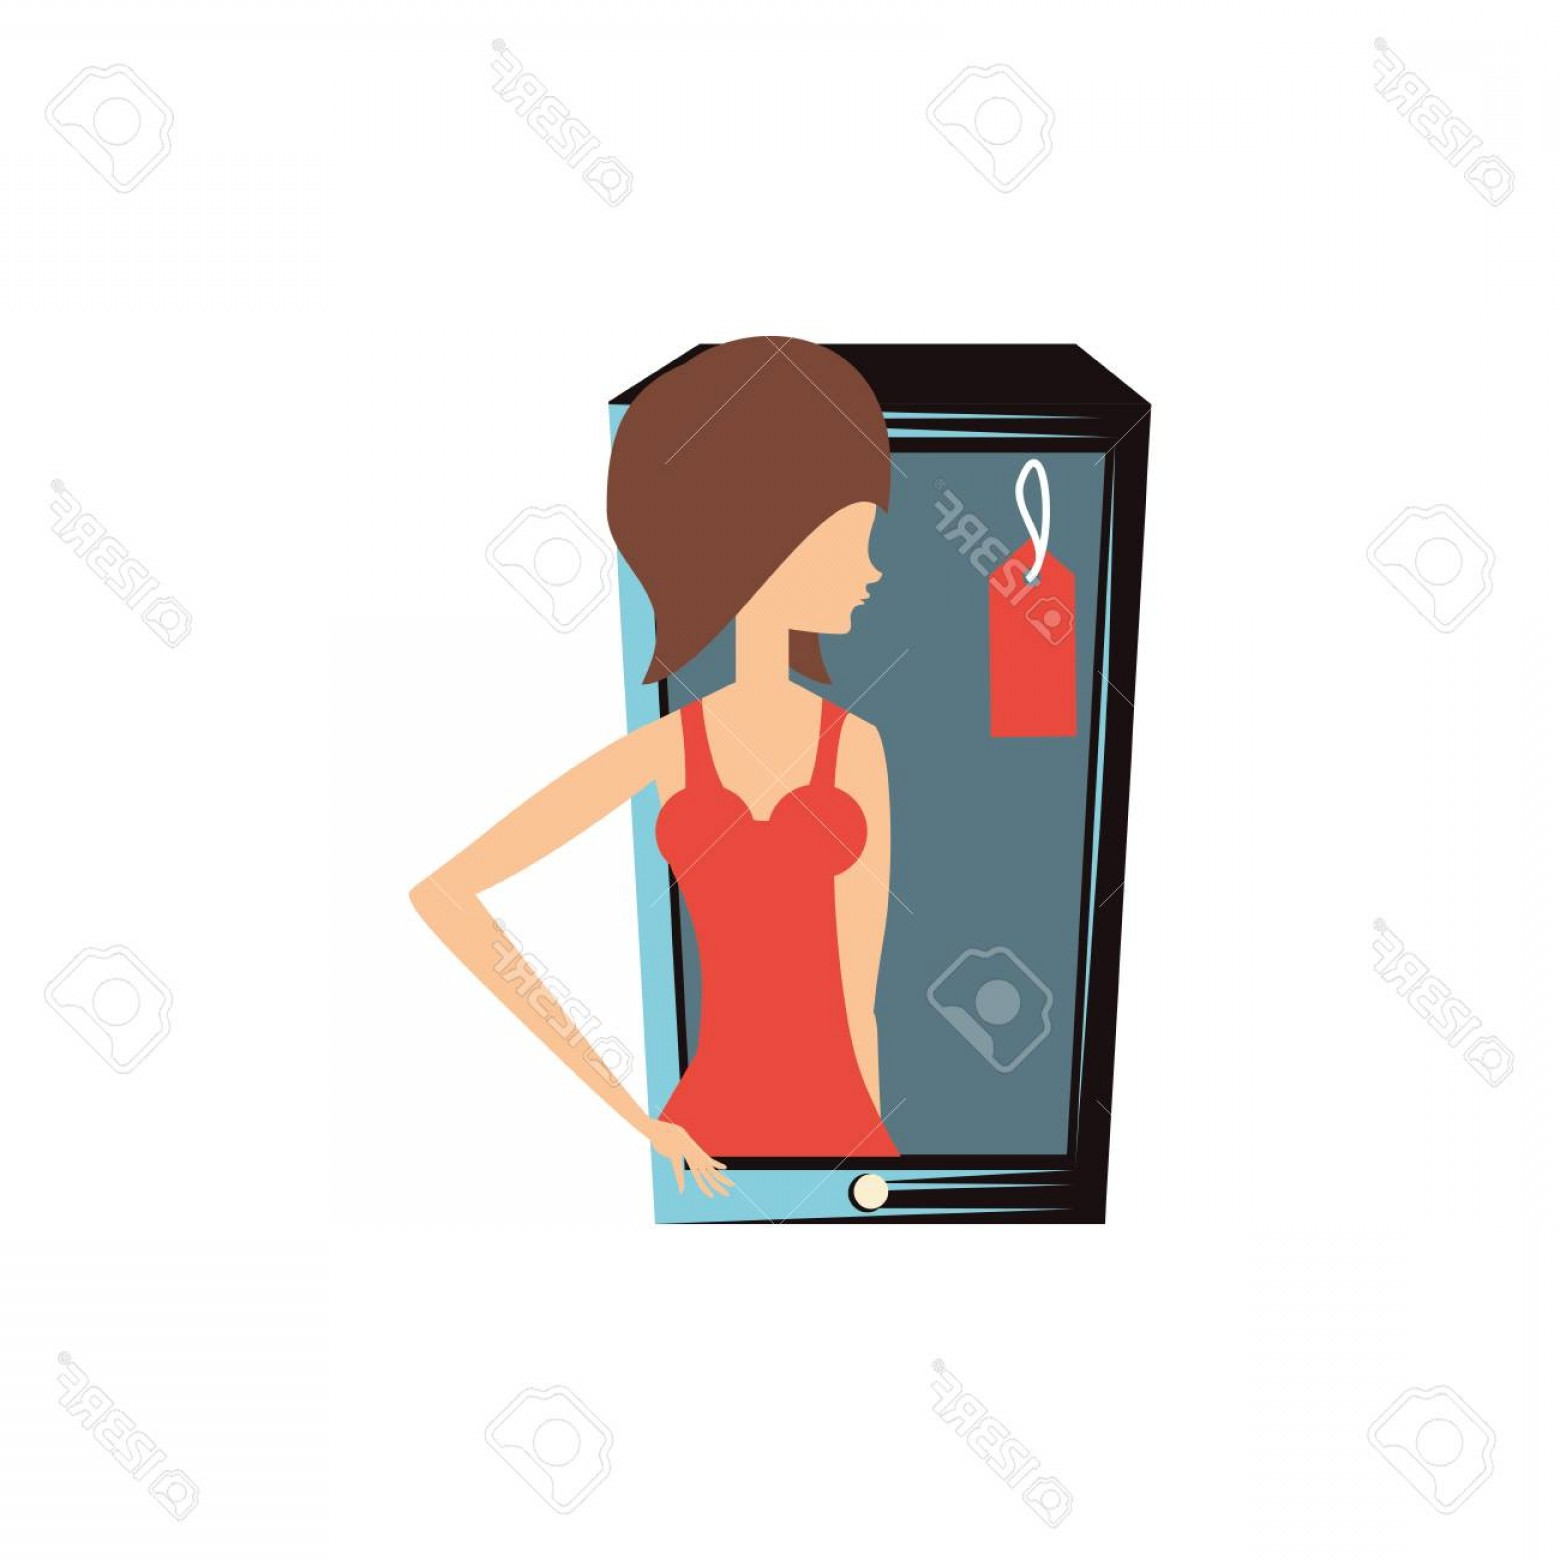 Commercial Booth Vector: Photostock Vector Woman Retro In Smartphone With Commercial Tag Vector Illustration Design